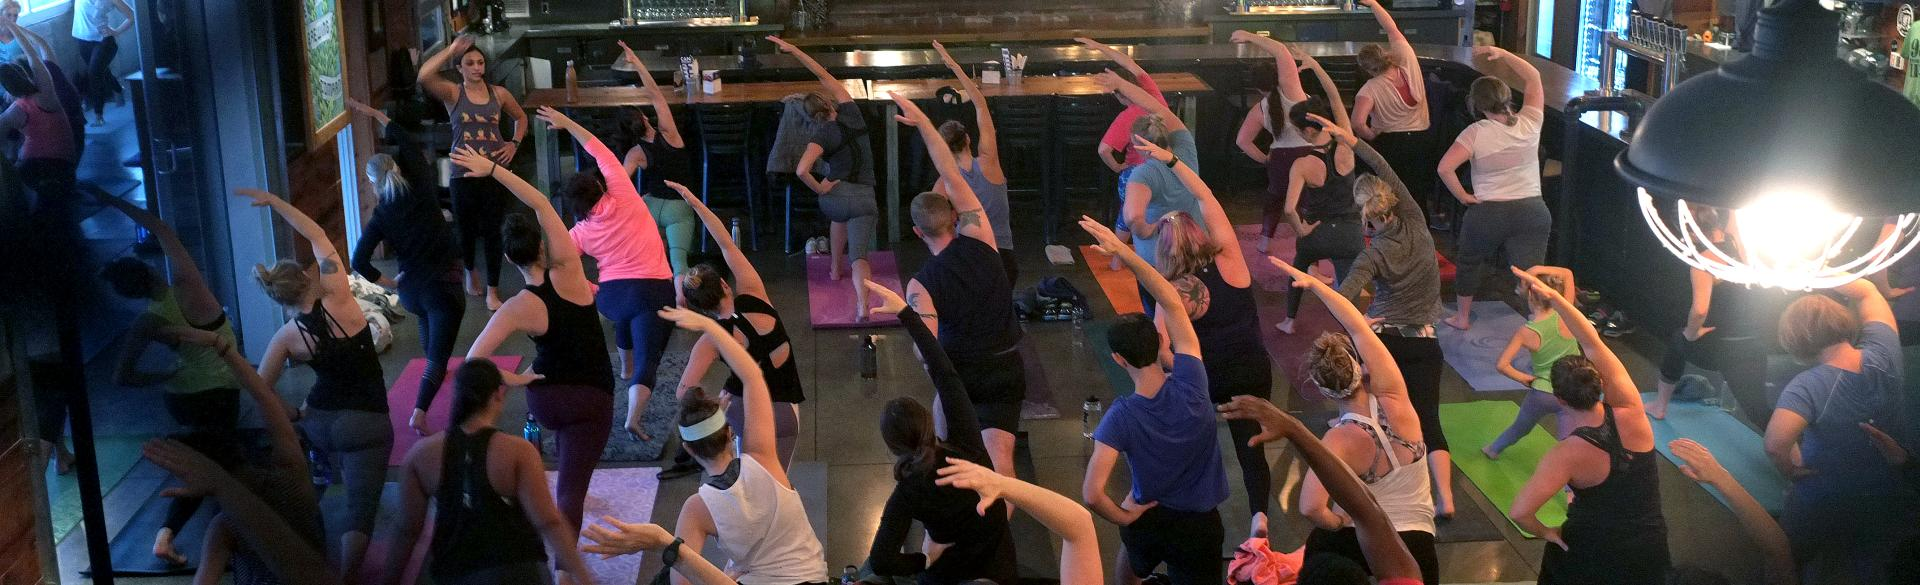 Yoga at Perrin Brewing